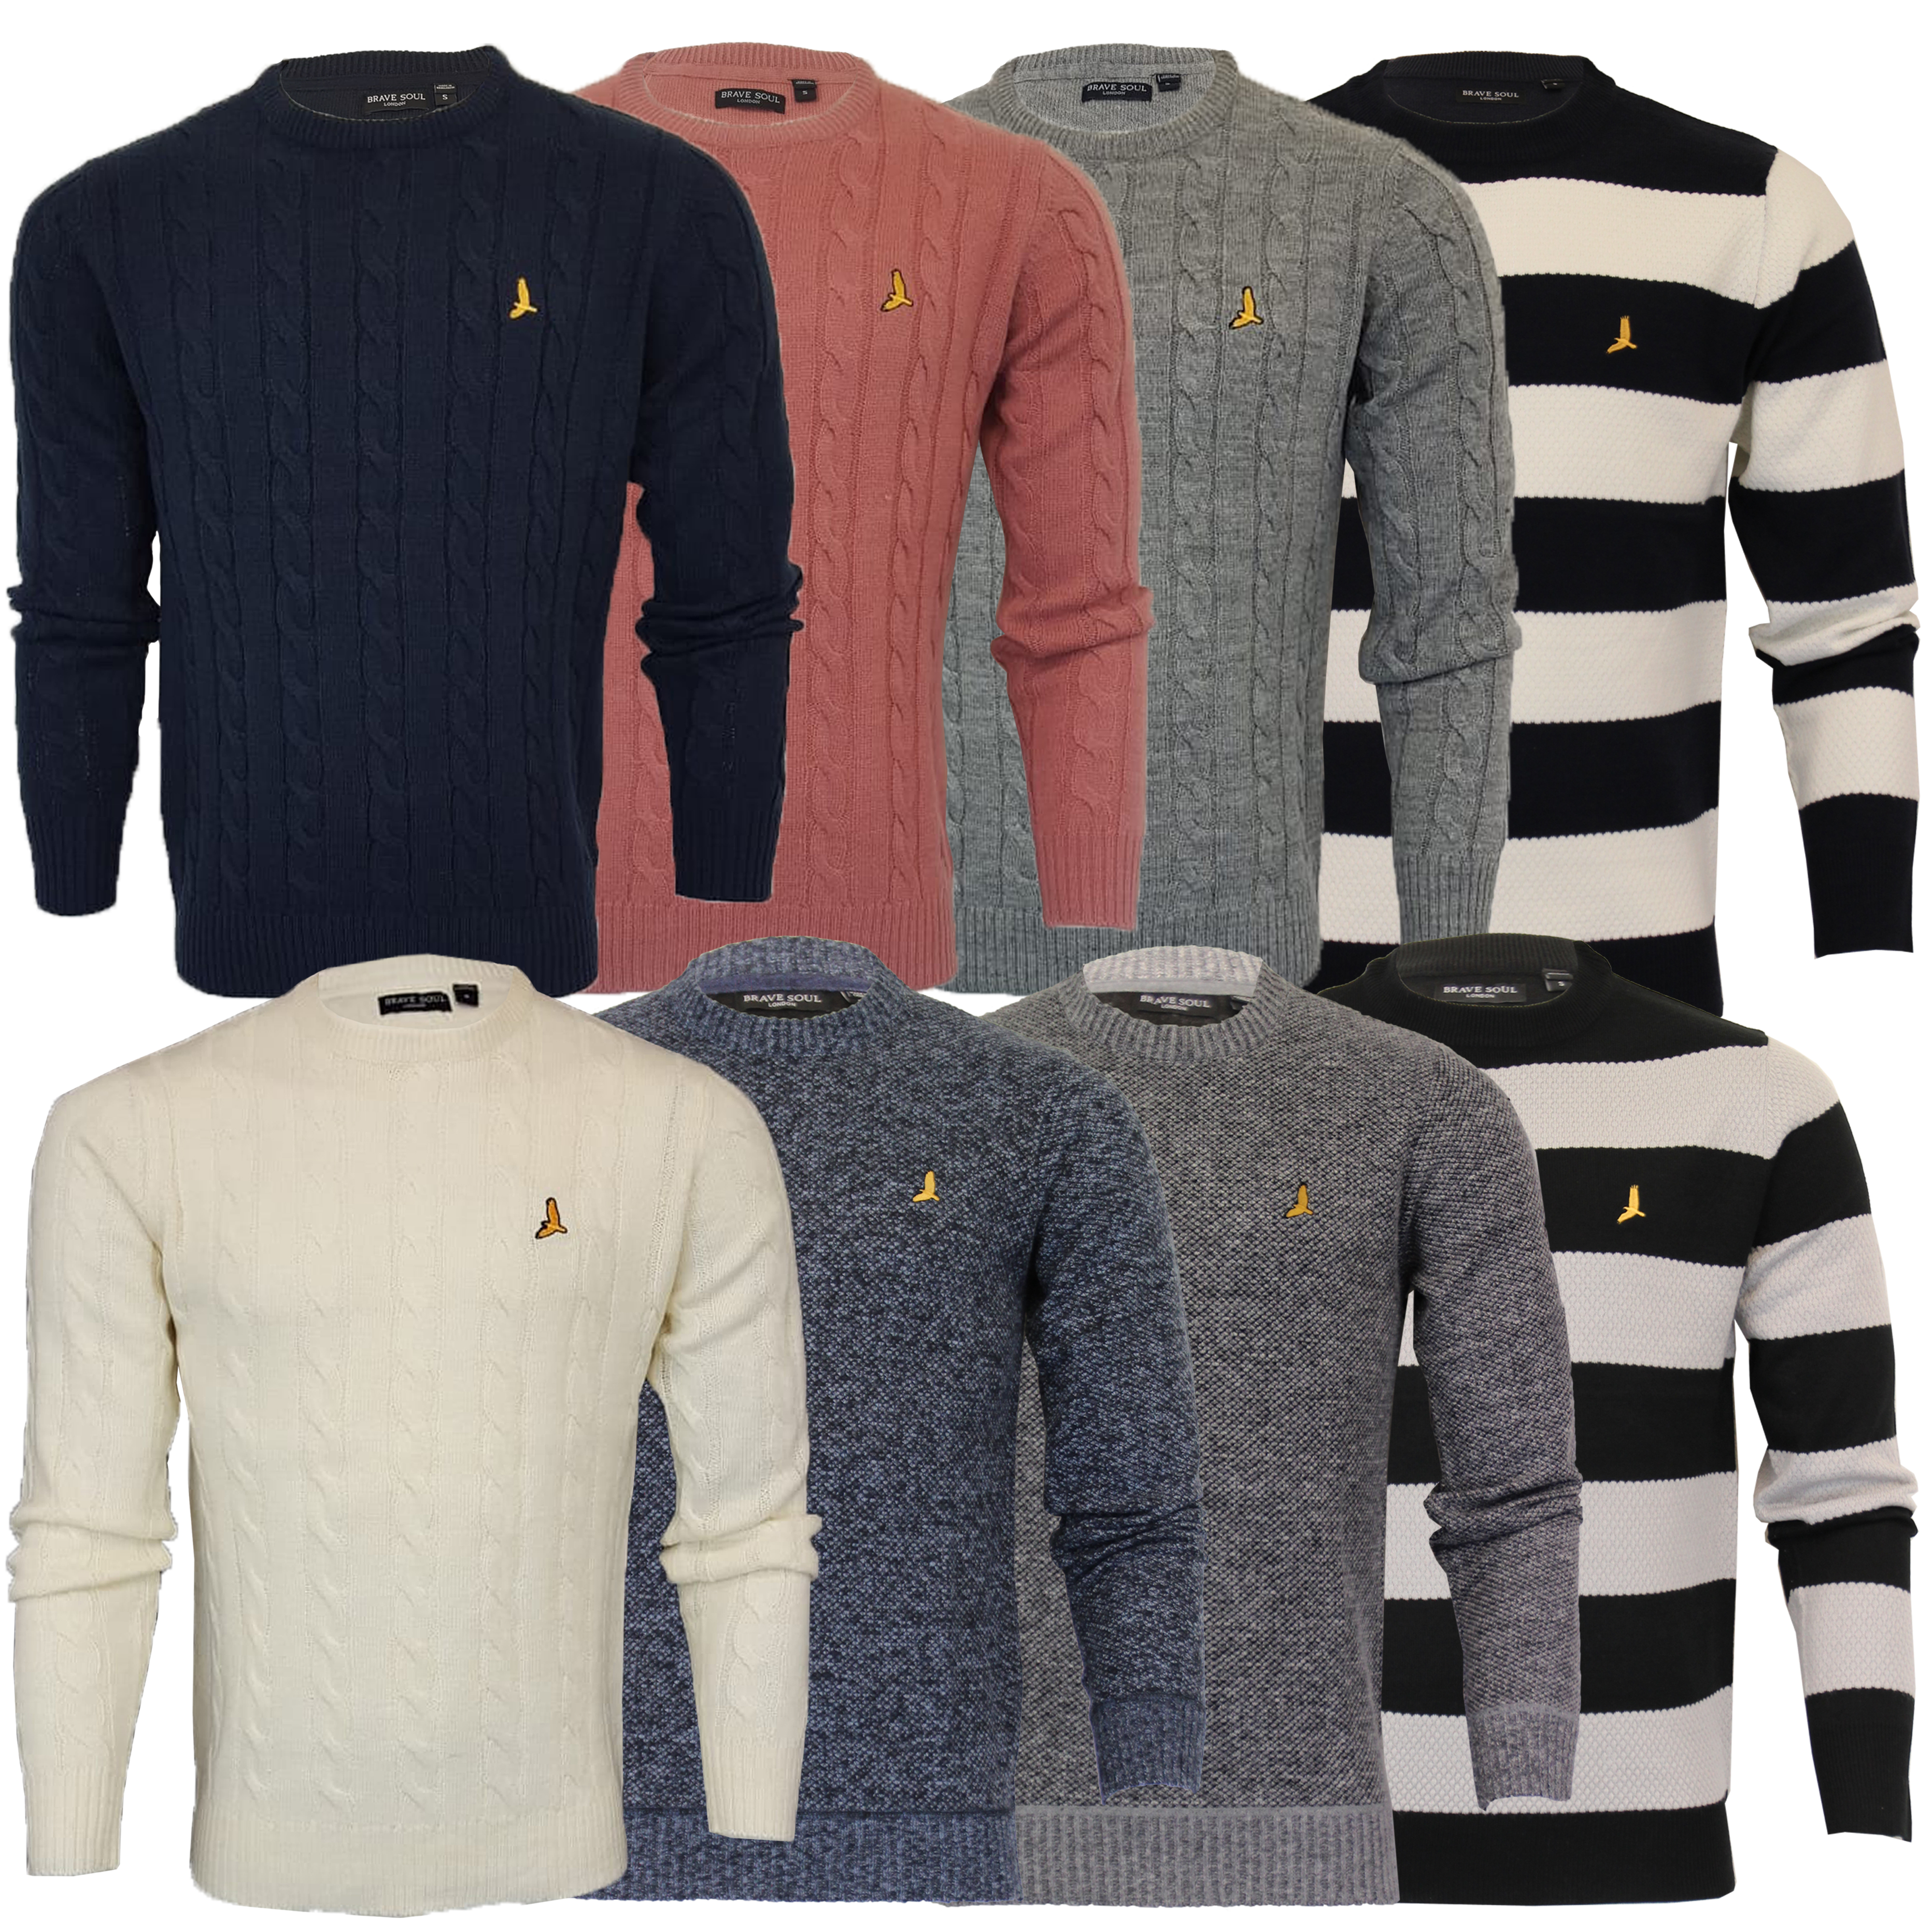 Mens-Jumper-Brave-Soul-Knitted-Sweater-Pullover-GOODWIN-Crew-Neck-Top-Winter-New thumbnail 4